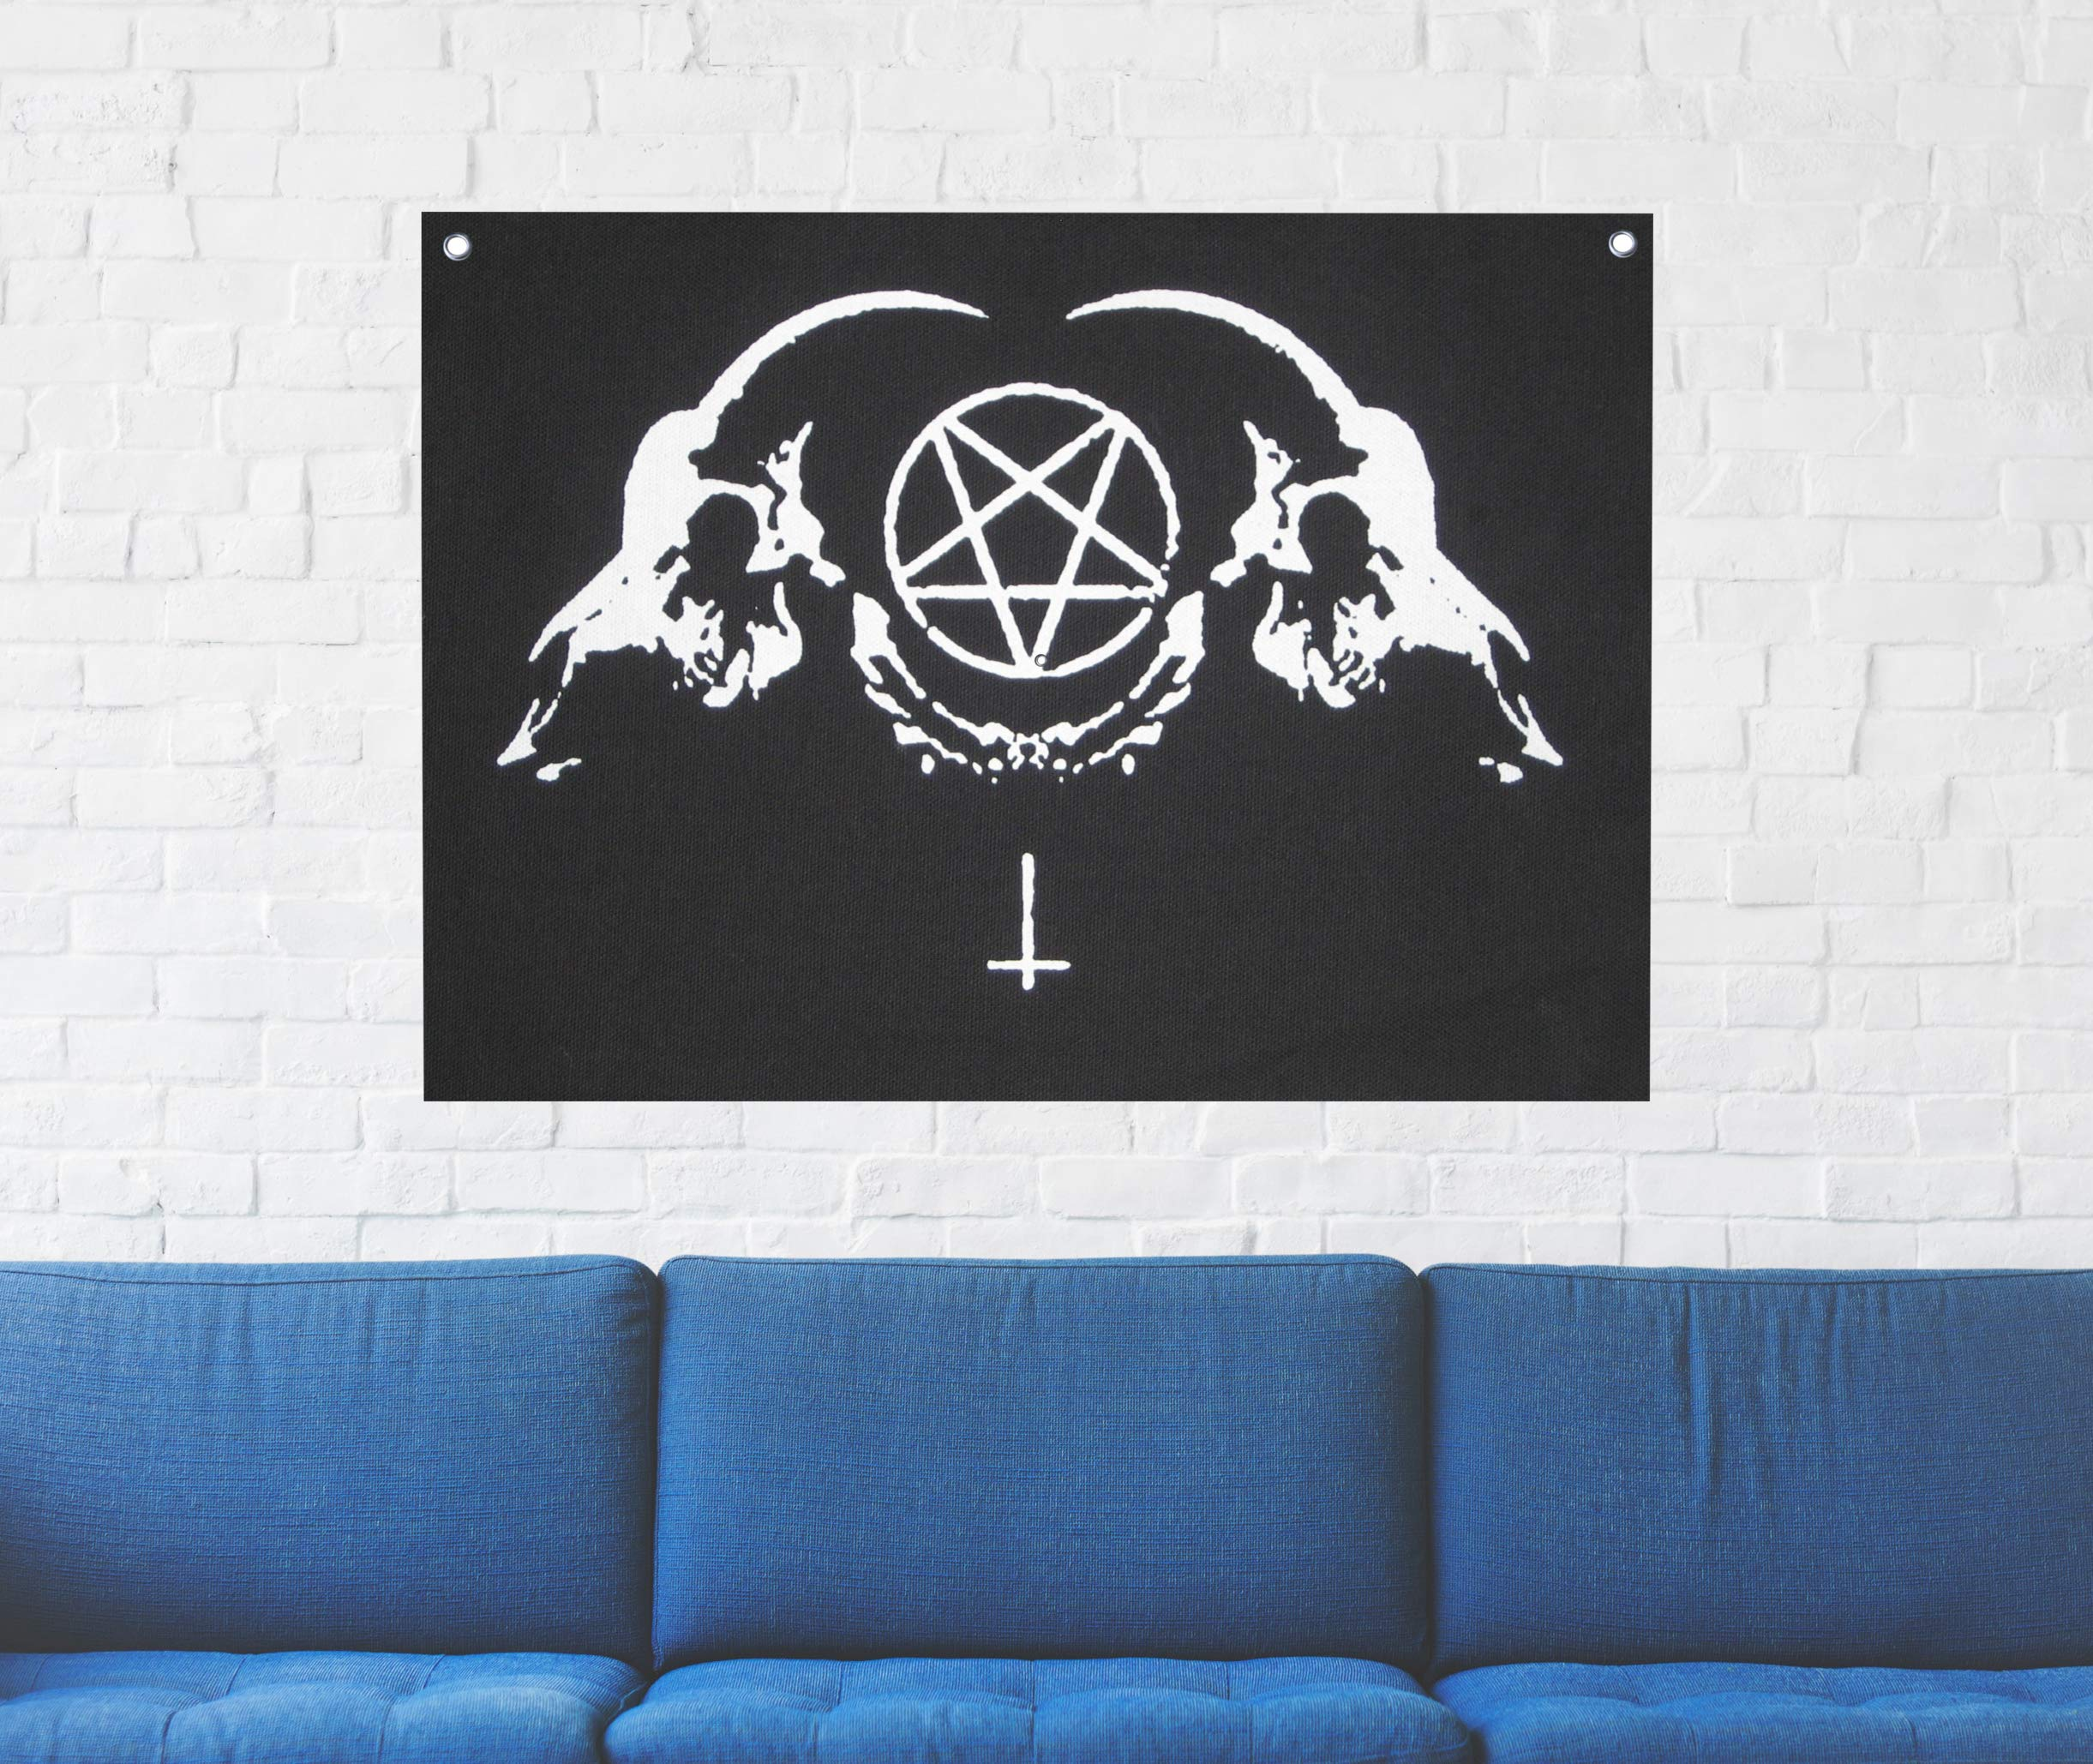 Goat Skull Wall Tapestry - Sigil of Lucifer Pentagram Demonic Devil Dragon Demon Evil Mendes Goat's Head Gothic Metal Occult Punk Satan Satanic Skeleton Voodoo Wicca Baphomet Leviathan Cross Inverted